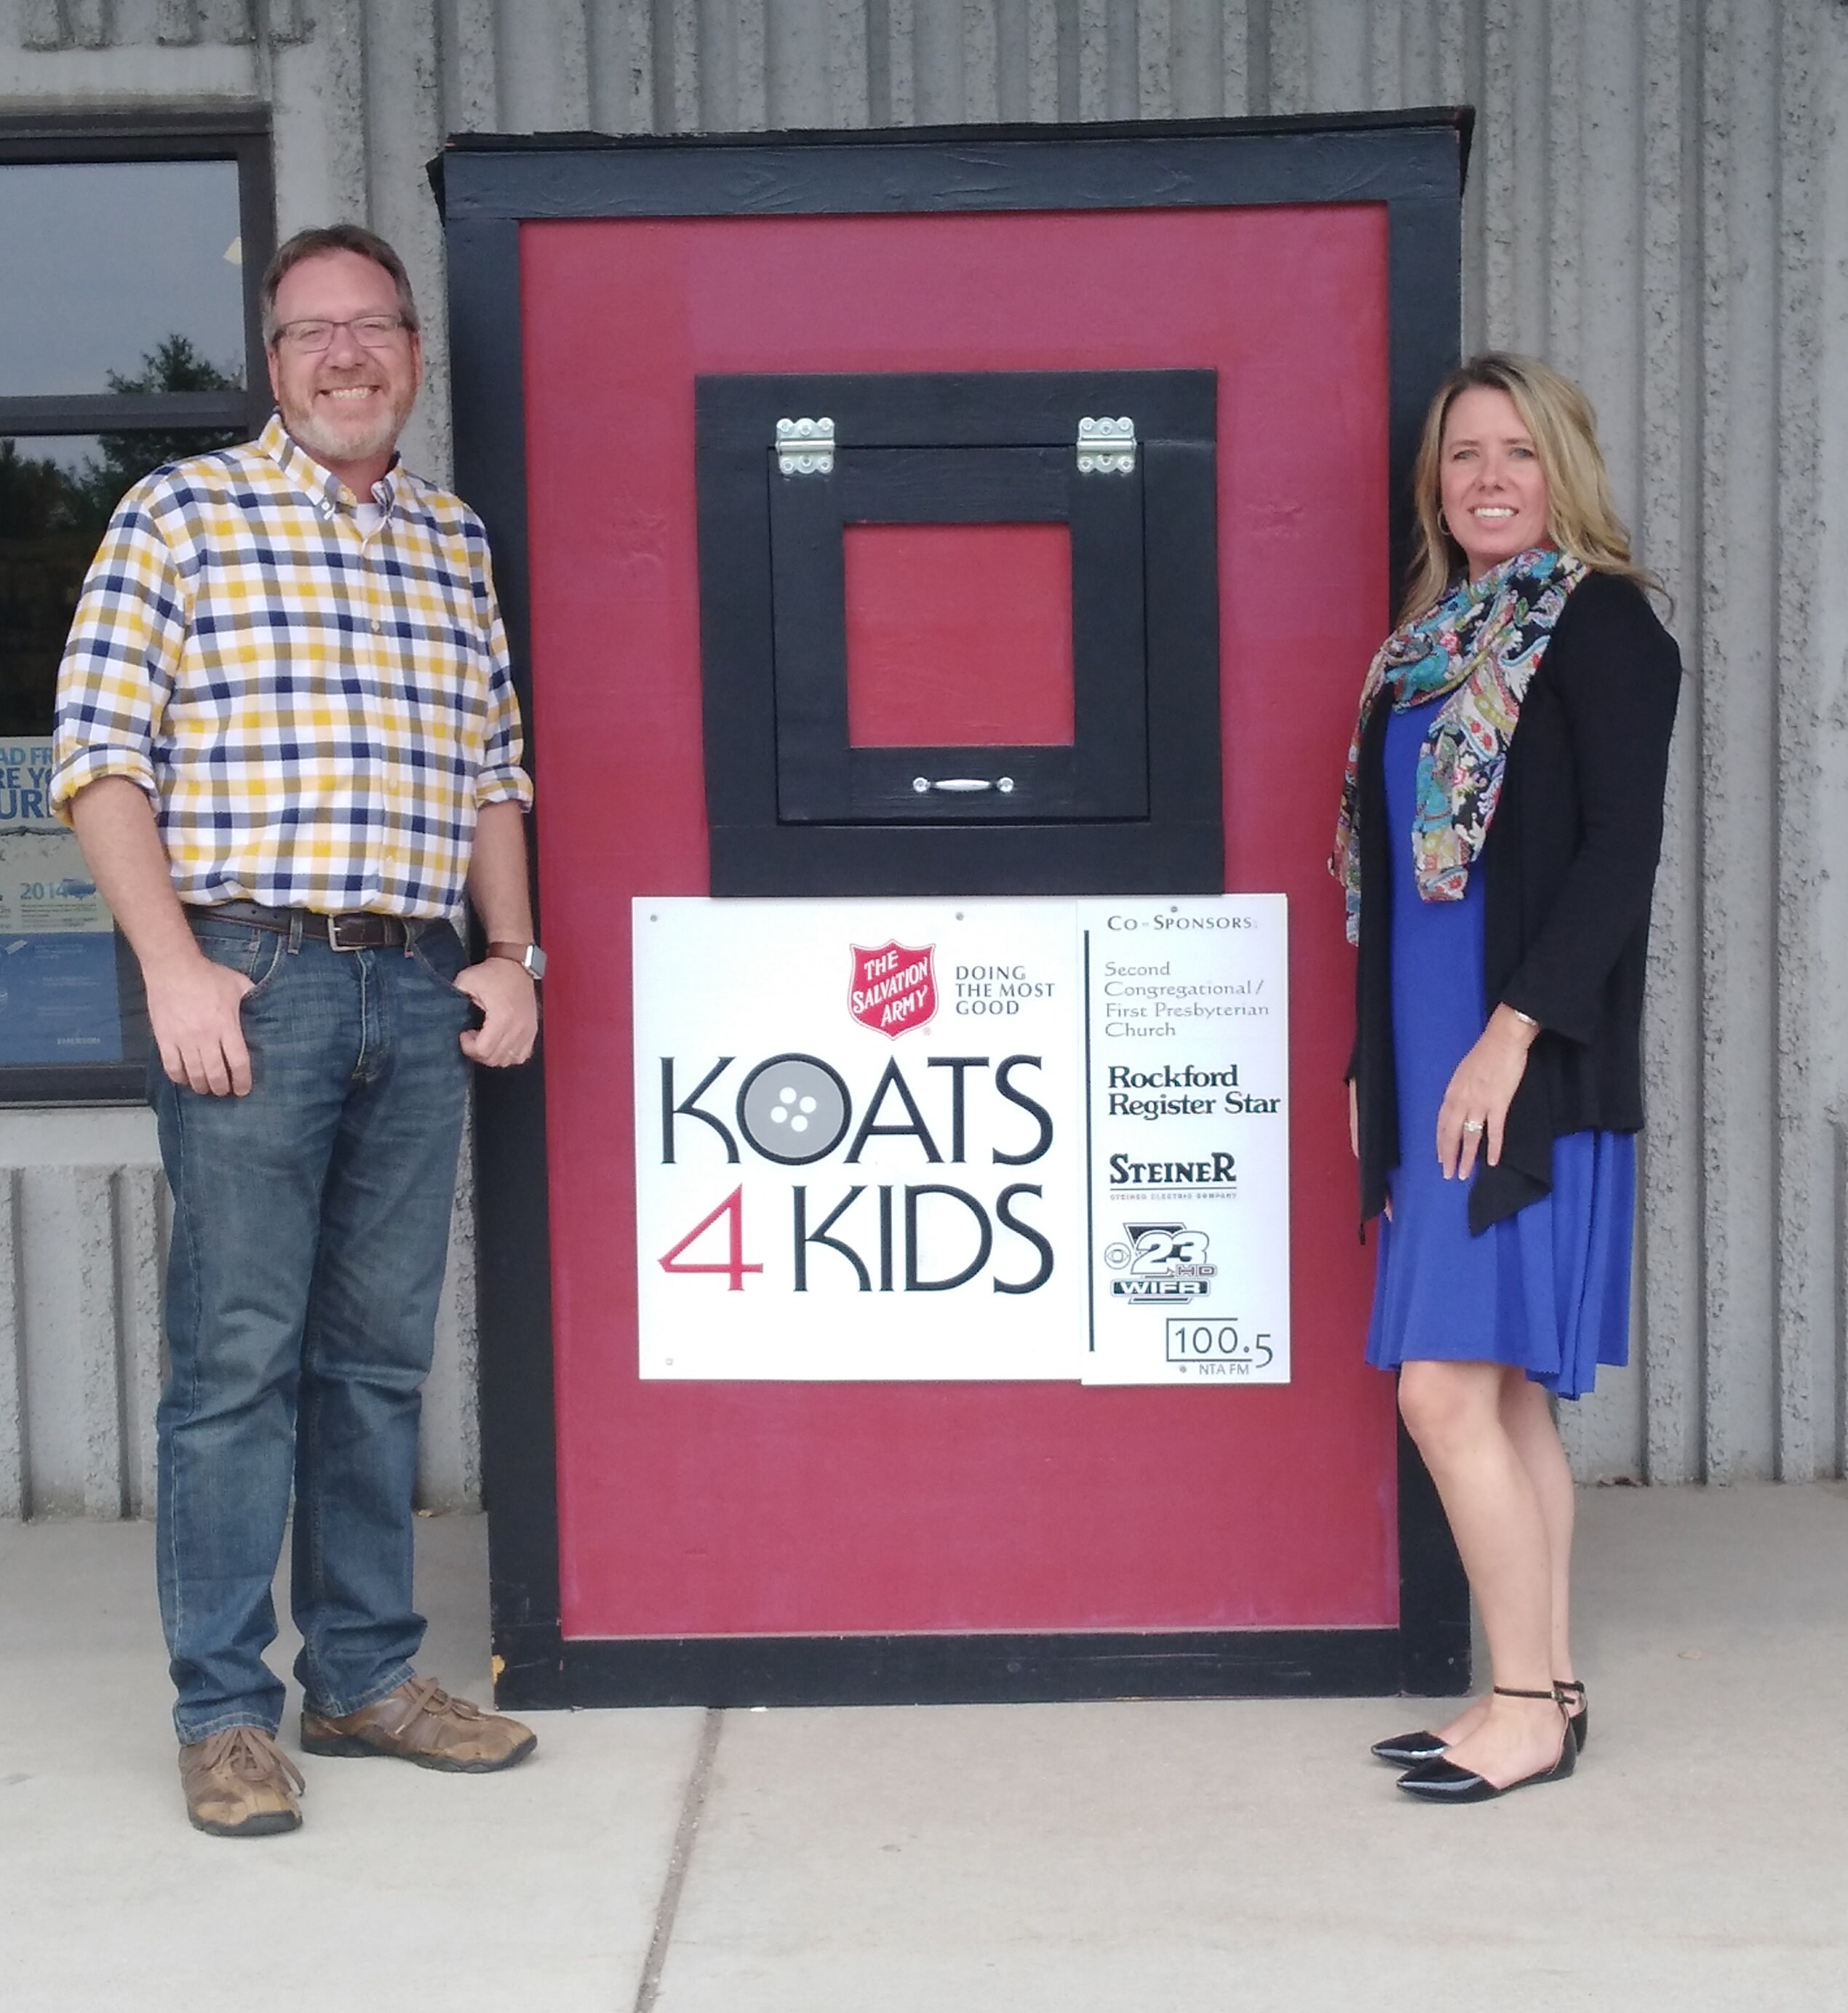 Koats 4 Kids Donation Box